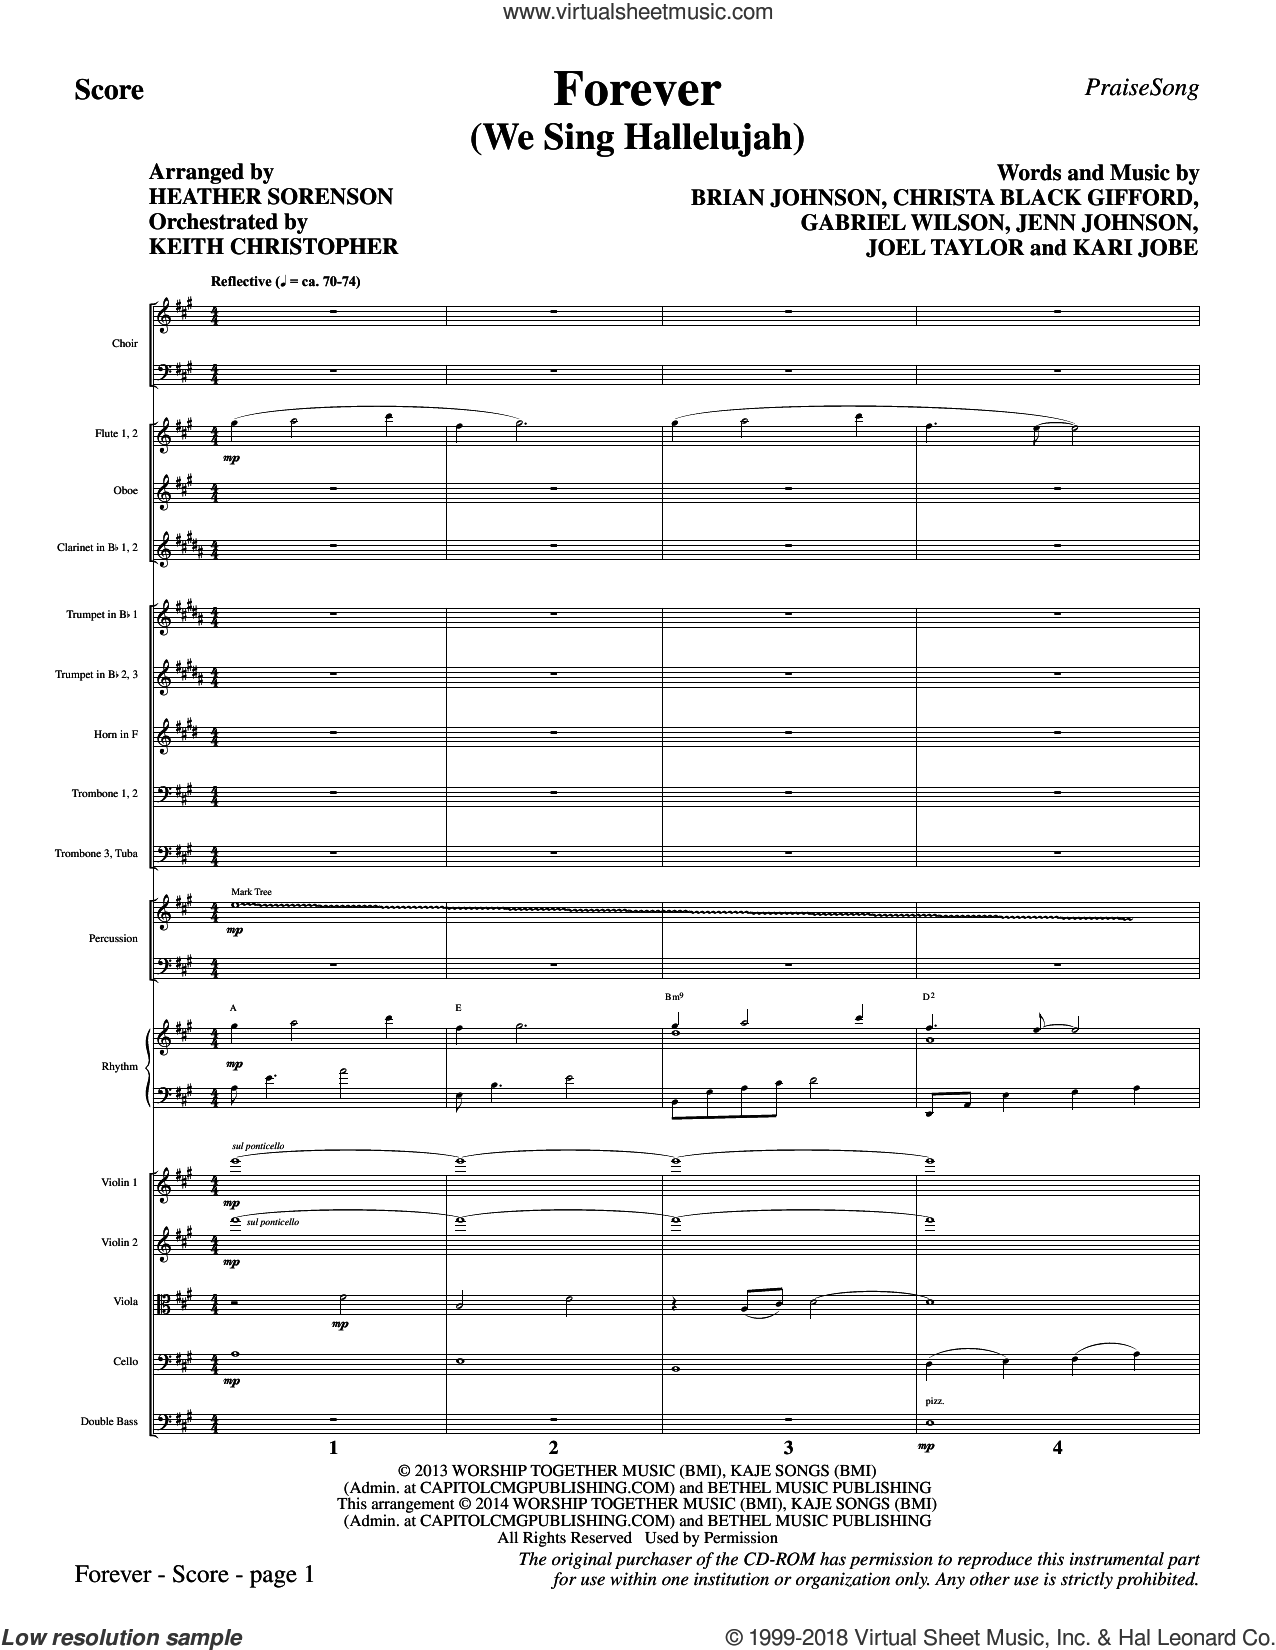 Forever (We Sing Hallelujah) (COMPLETE) sheet music for orchestra/band by Heather Sorenson, Brian Johnson, Christa Black Gifford, Gabriel Wilson, Jenn Johnson, Joel Taylor and Kari Jobe, intermediate. Score Image Preview.